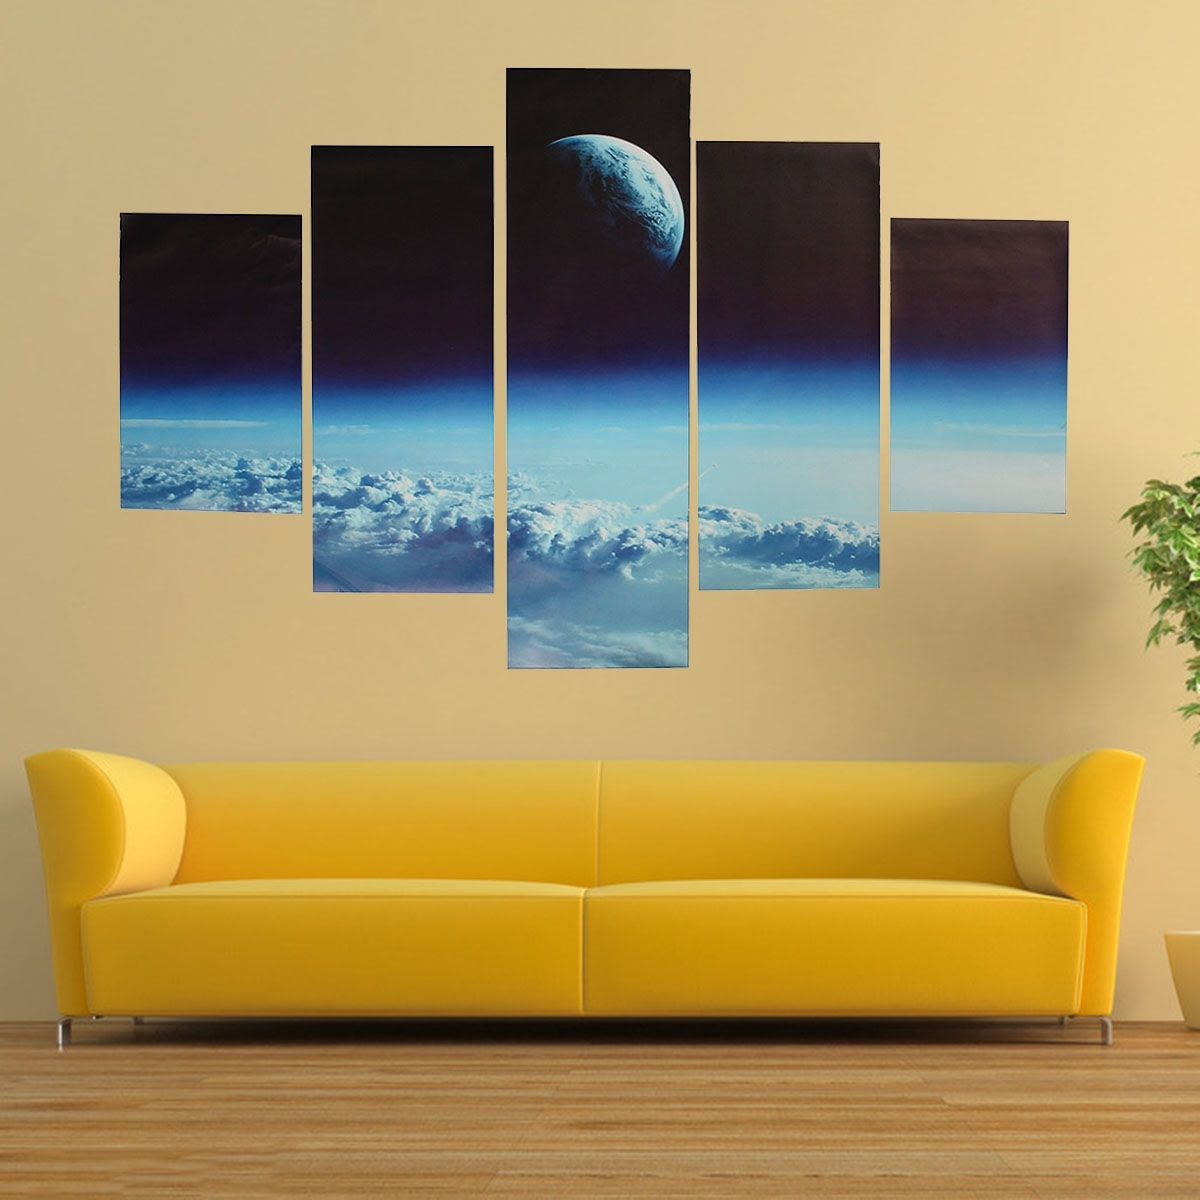 15 Ideas of Outer Space Wall Art